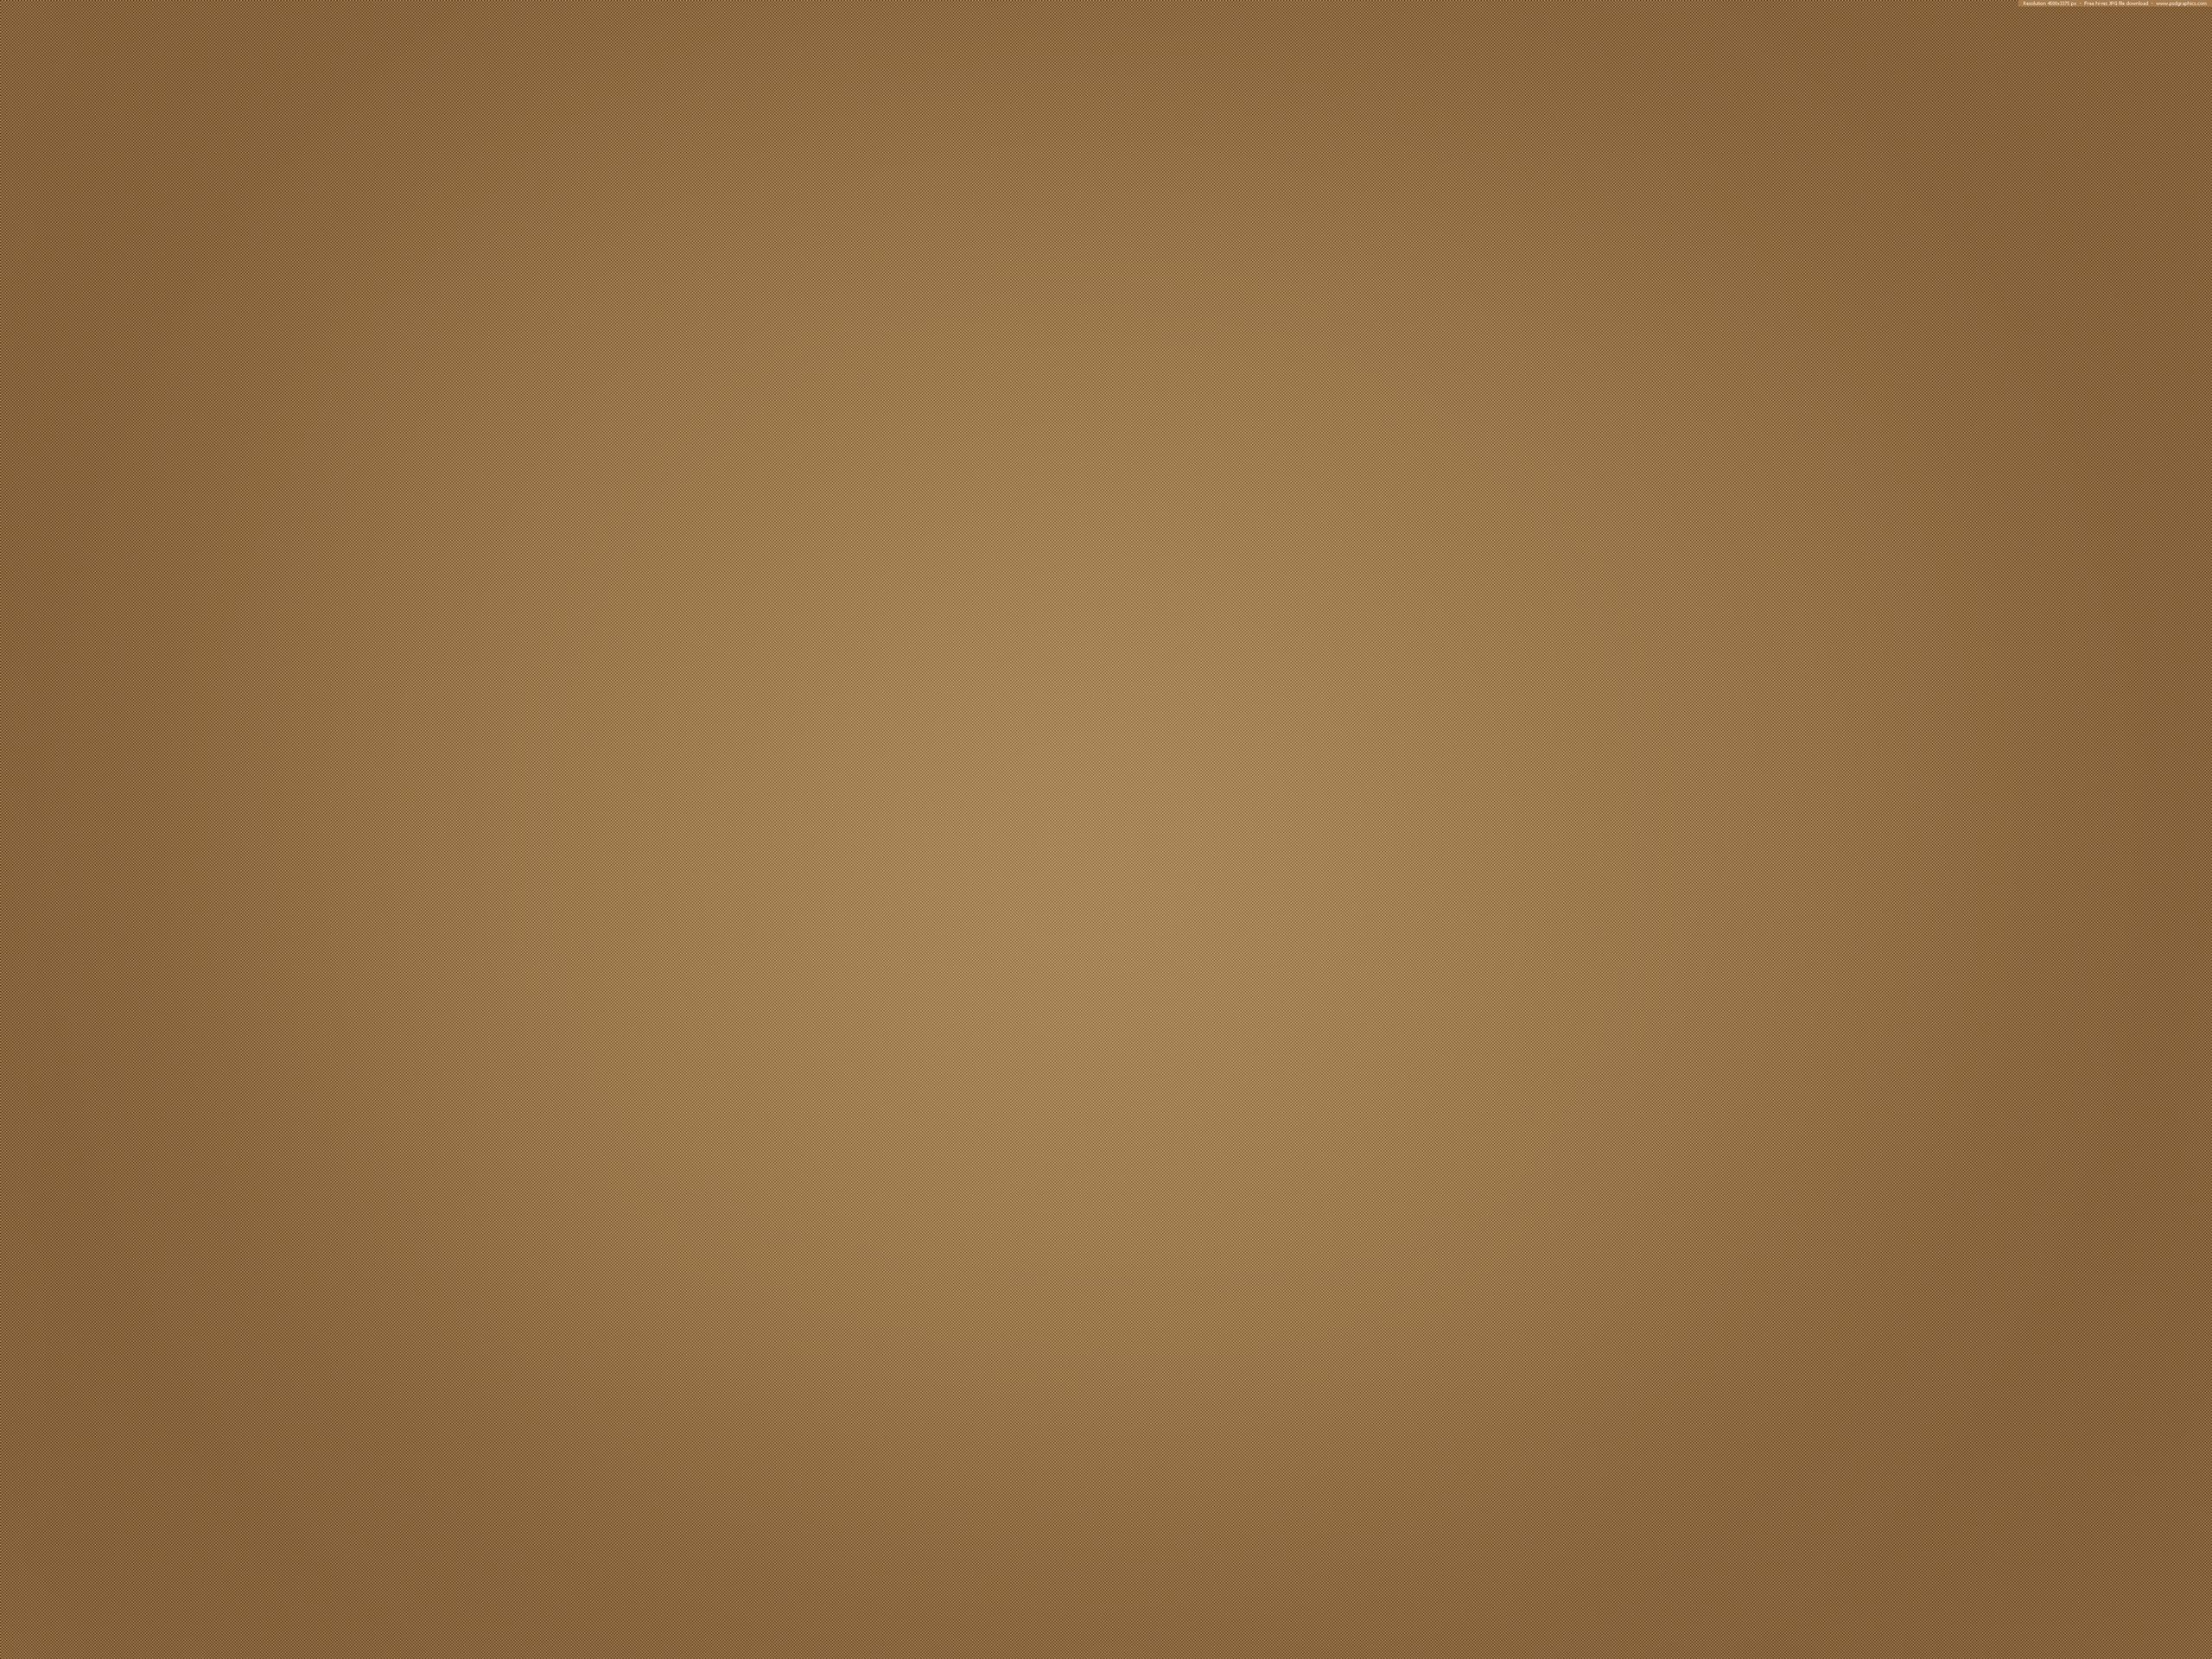 brown-paper-texture-with-brush-strokes-hd-wallpaper-wallpaper-with-brown-paper-background